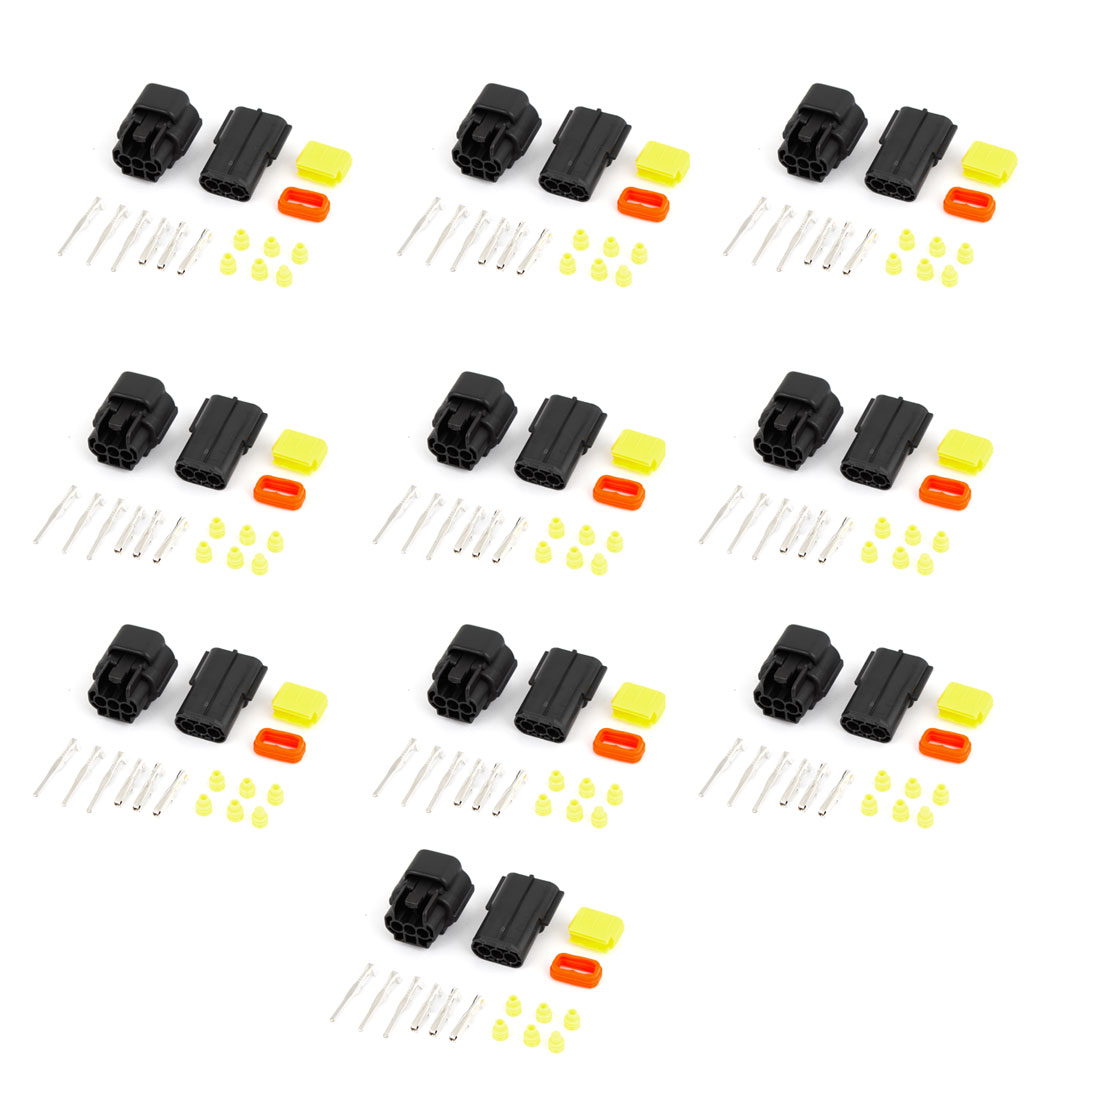 10 Set 3-Terminals 3 Positions Sealed Waterproof Cable Connectors for Car Stereo